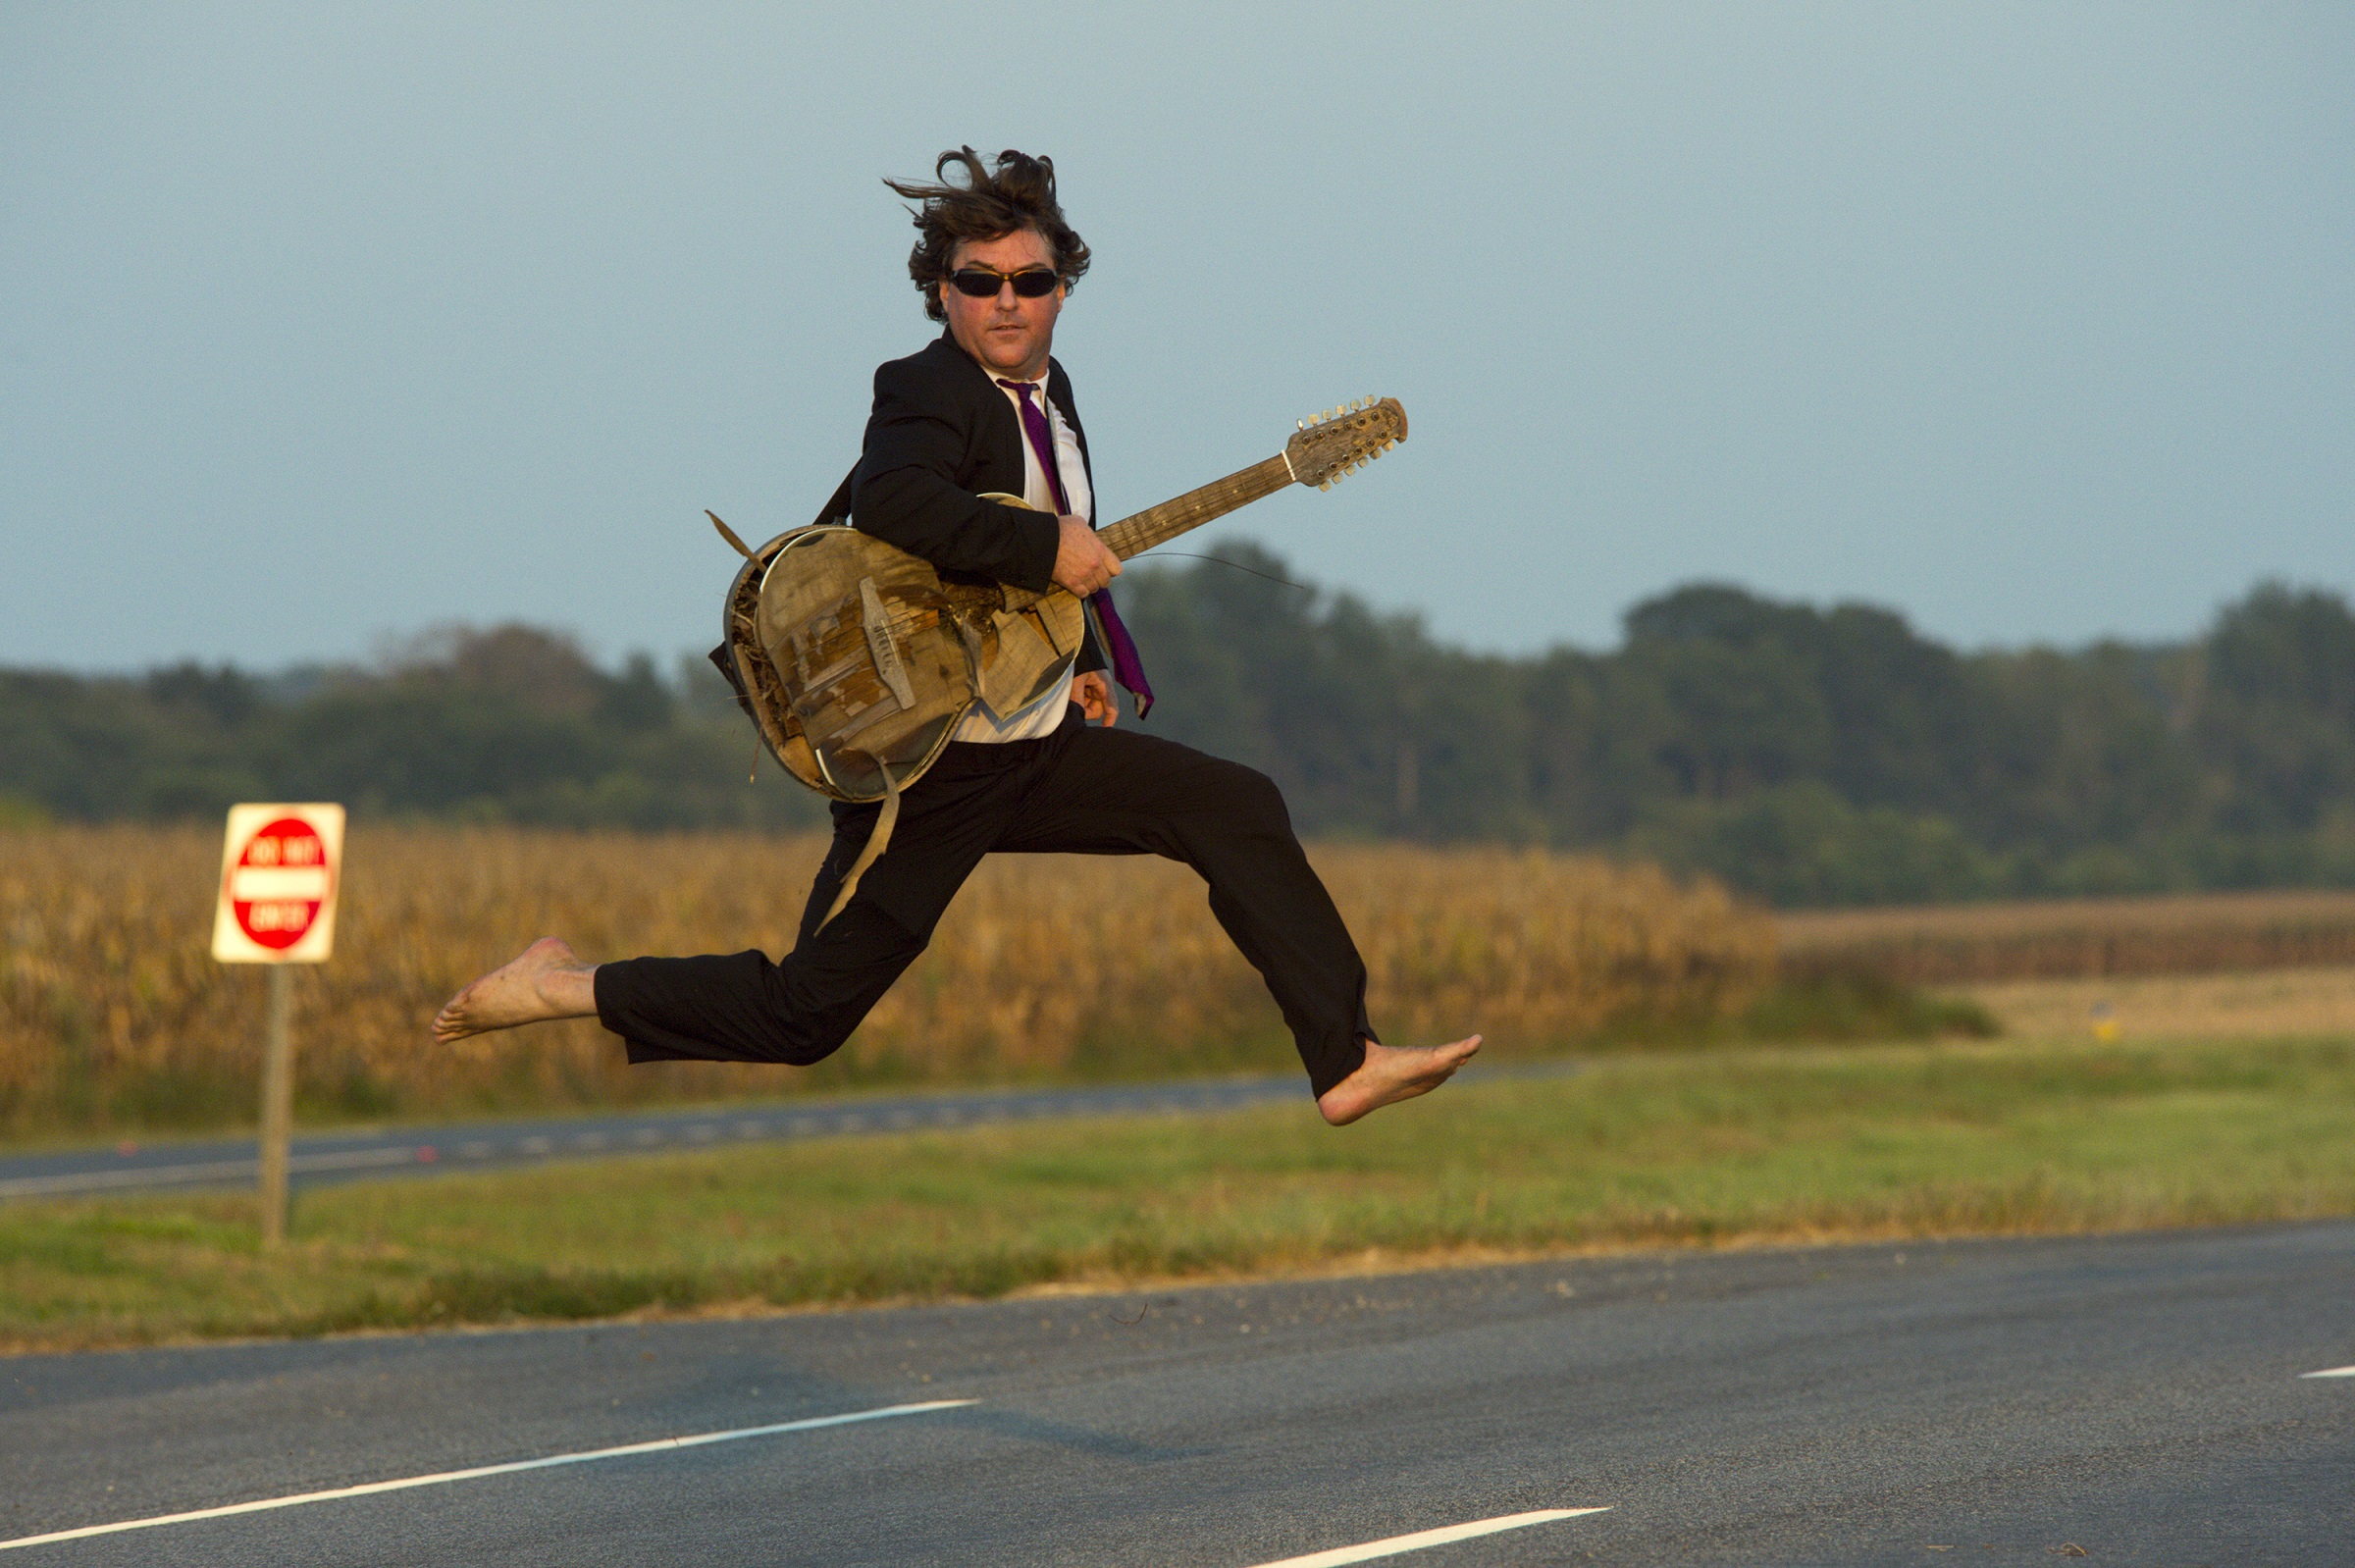 KELLER WILLIAMS STAKES OUT HIS OWN MUSIC REAL ESTATE